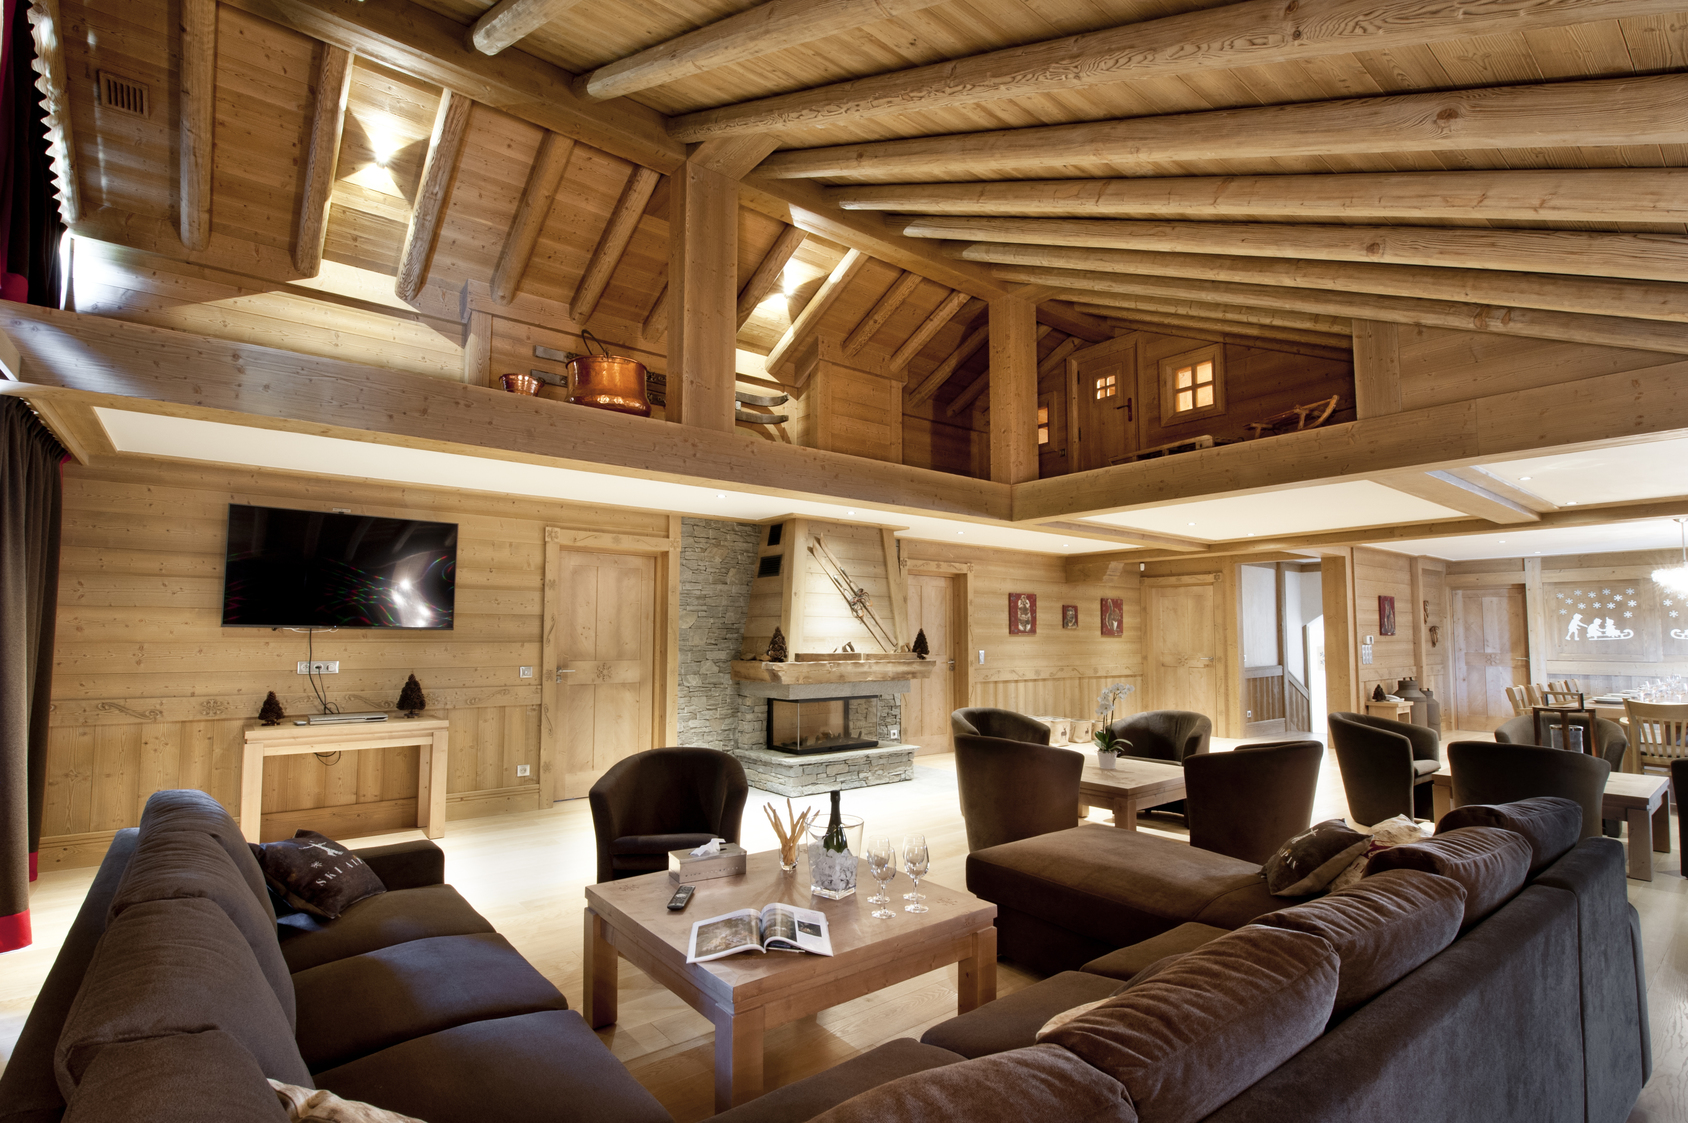 Where To Stay For The Ultimate Romantic Ski Holiday | Le Flocon – Plagne